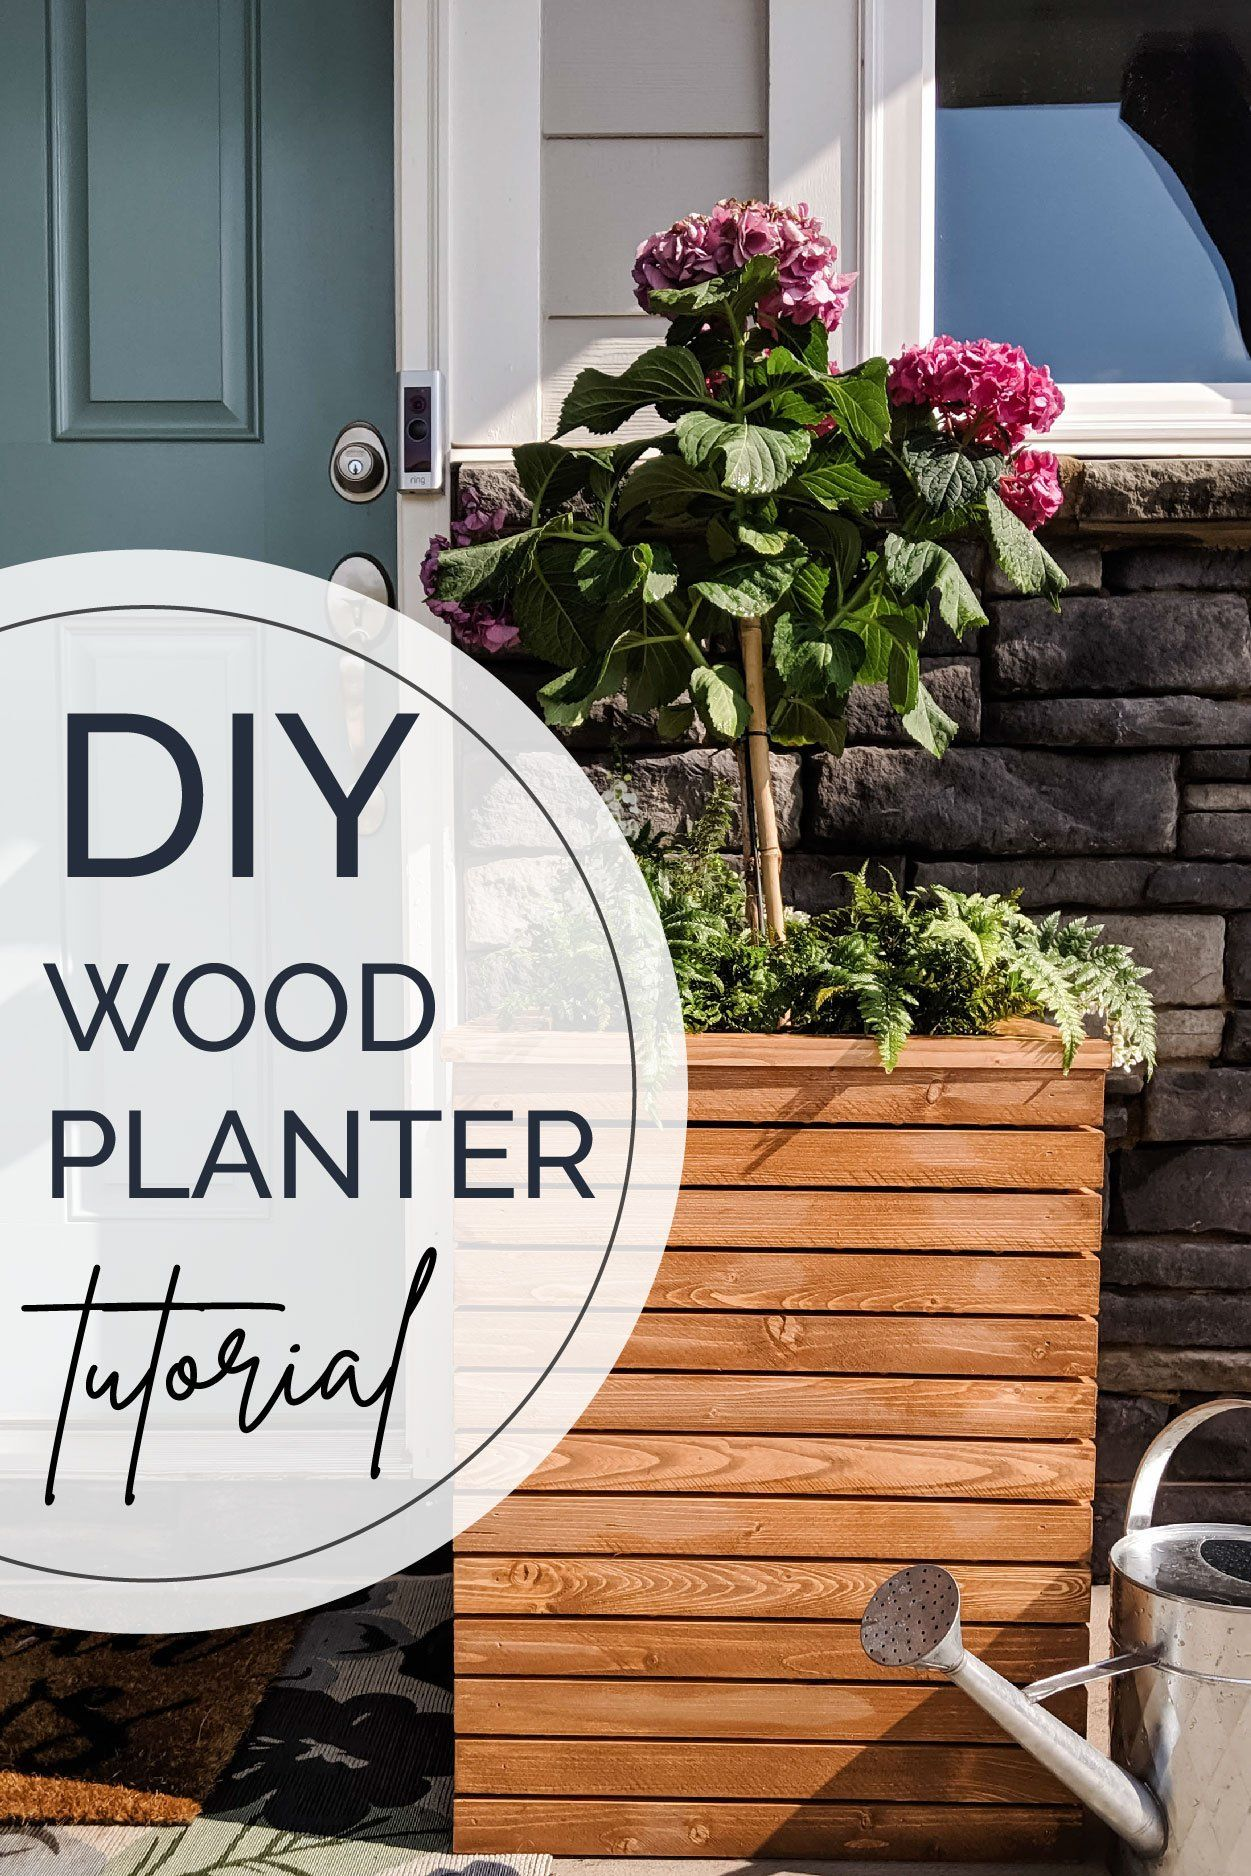 DIY Wood Planter Box Plans is part of Diy wood planters, Wood planters, Diy wood planter box, Wood planter box, Planter boxes, Planter box plans - Learn how to make this beginnerfriendly wood planter box using these stepbystep plans